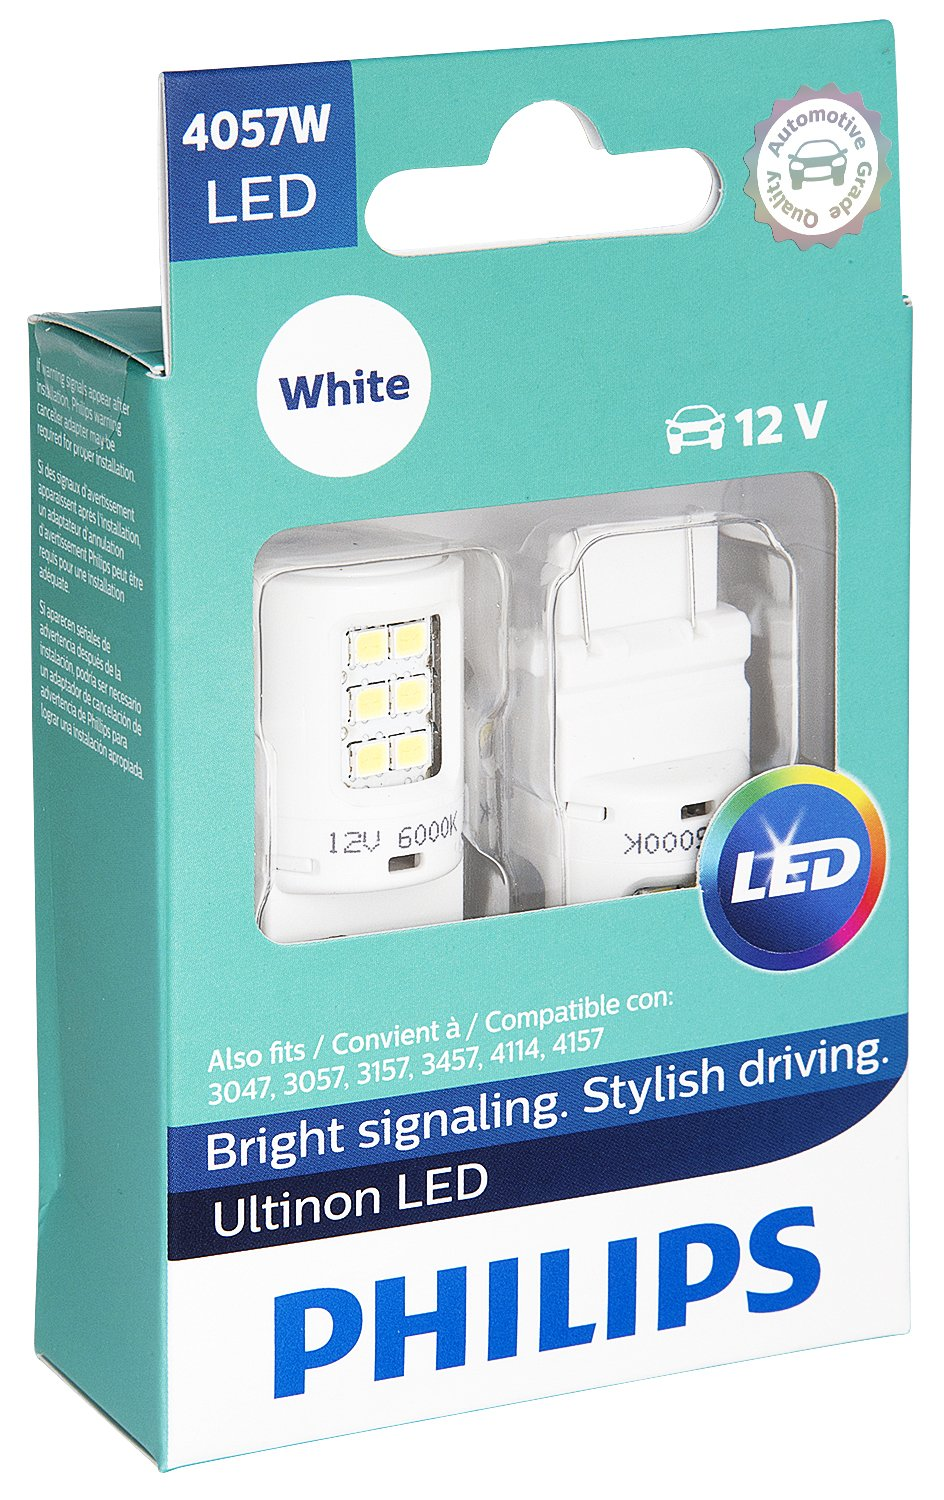 2 Pack Philips 4057 Ultinon LED Bulb White